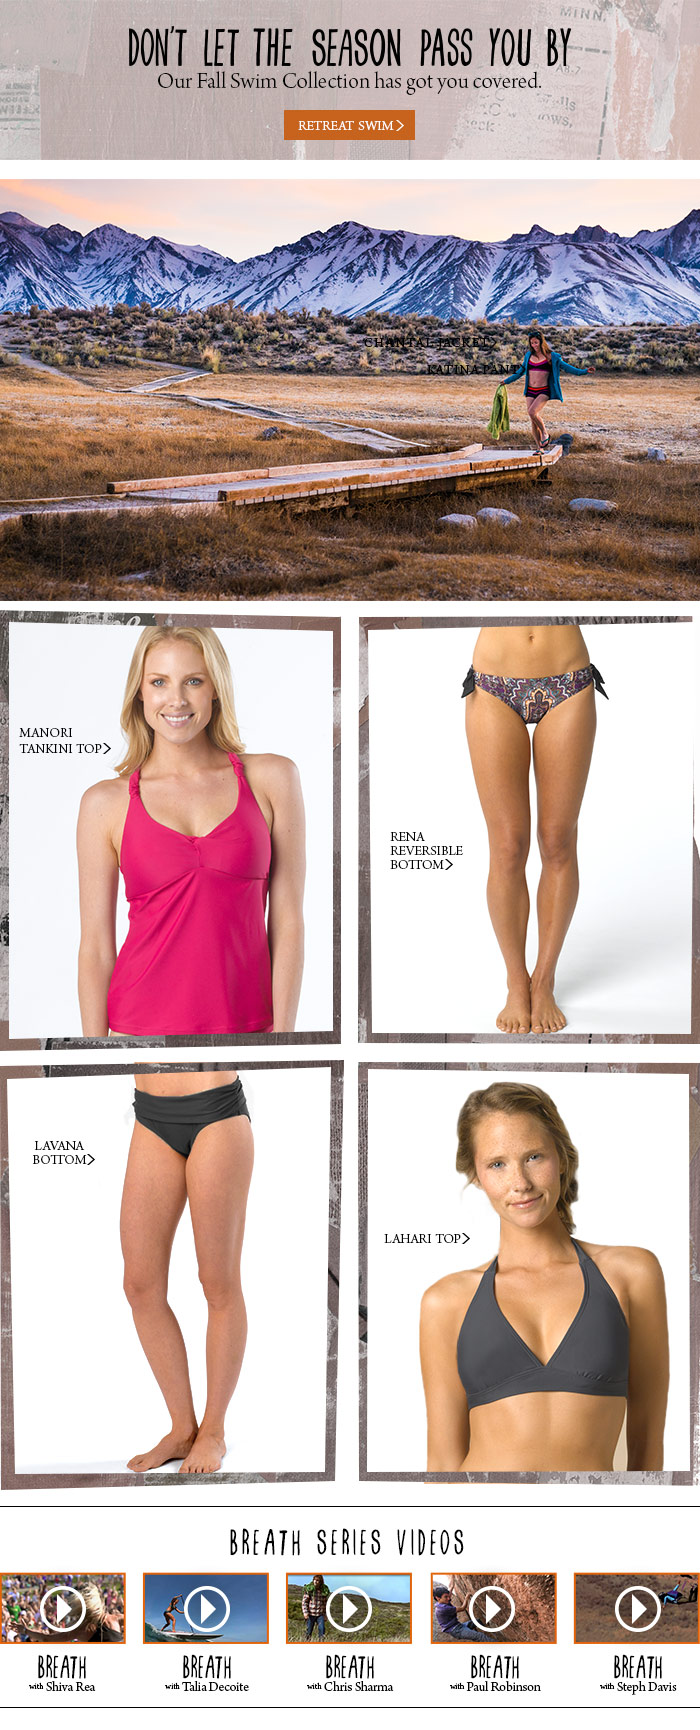 Our Swim Collection has you covered